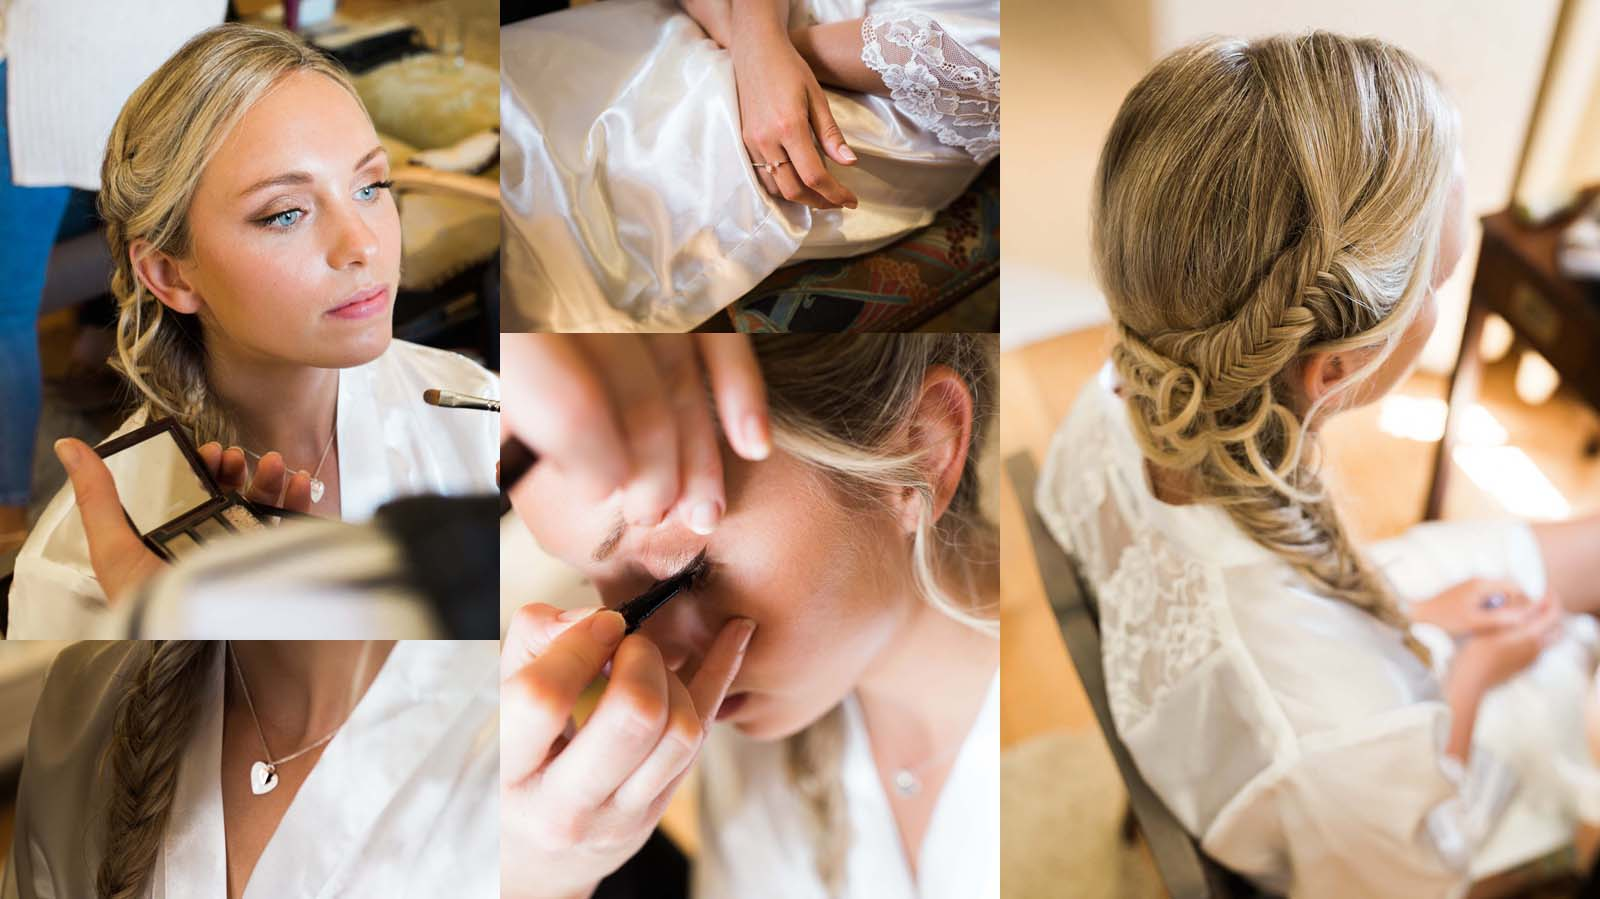 Notley Abbey wedding in Buckinghamshire - wedding preparations collage